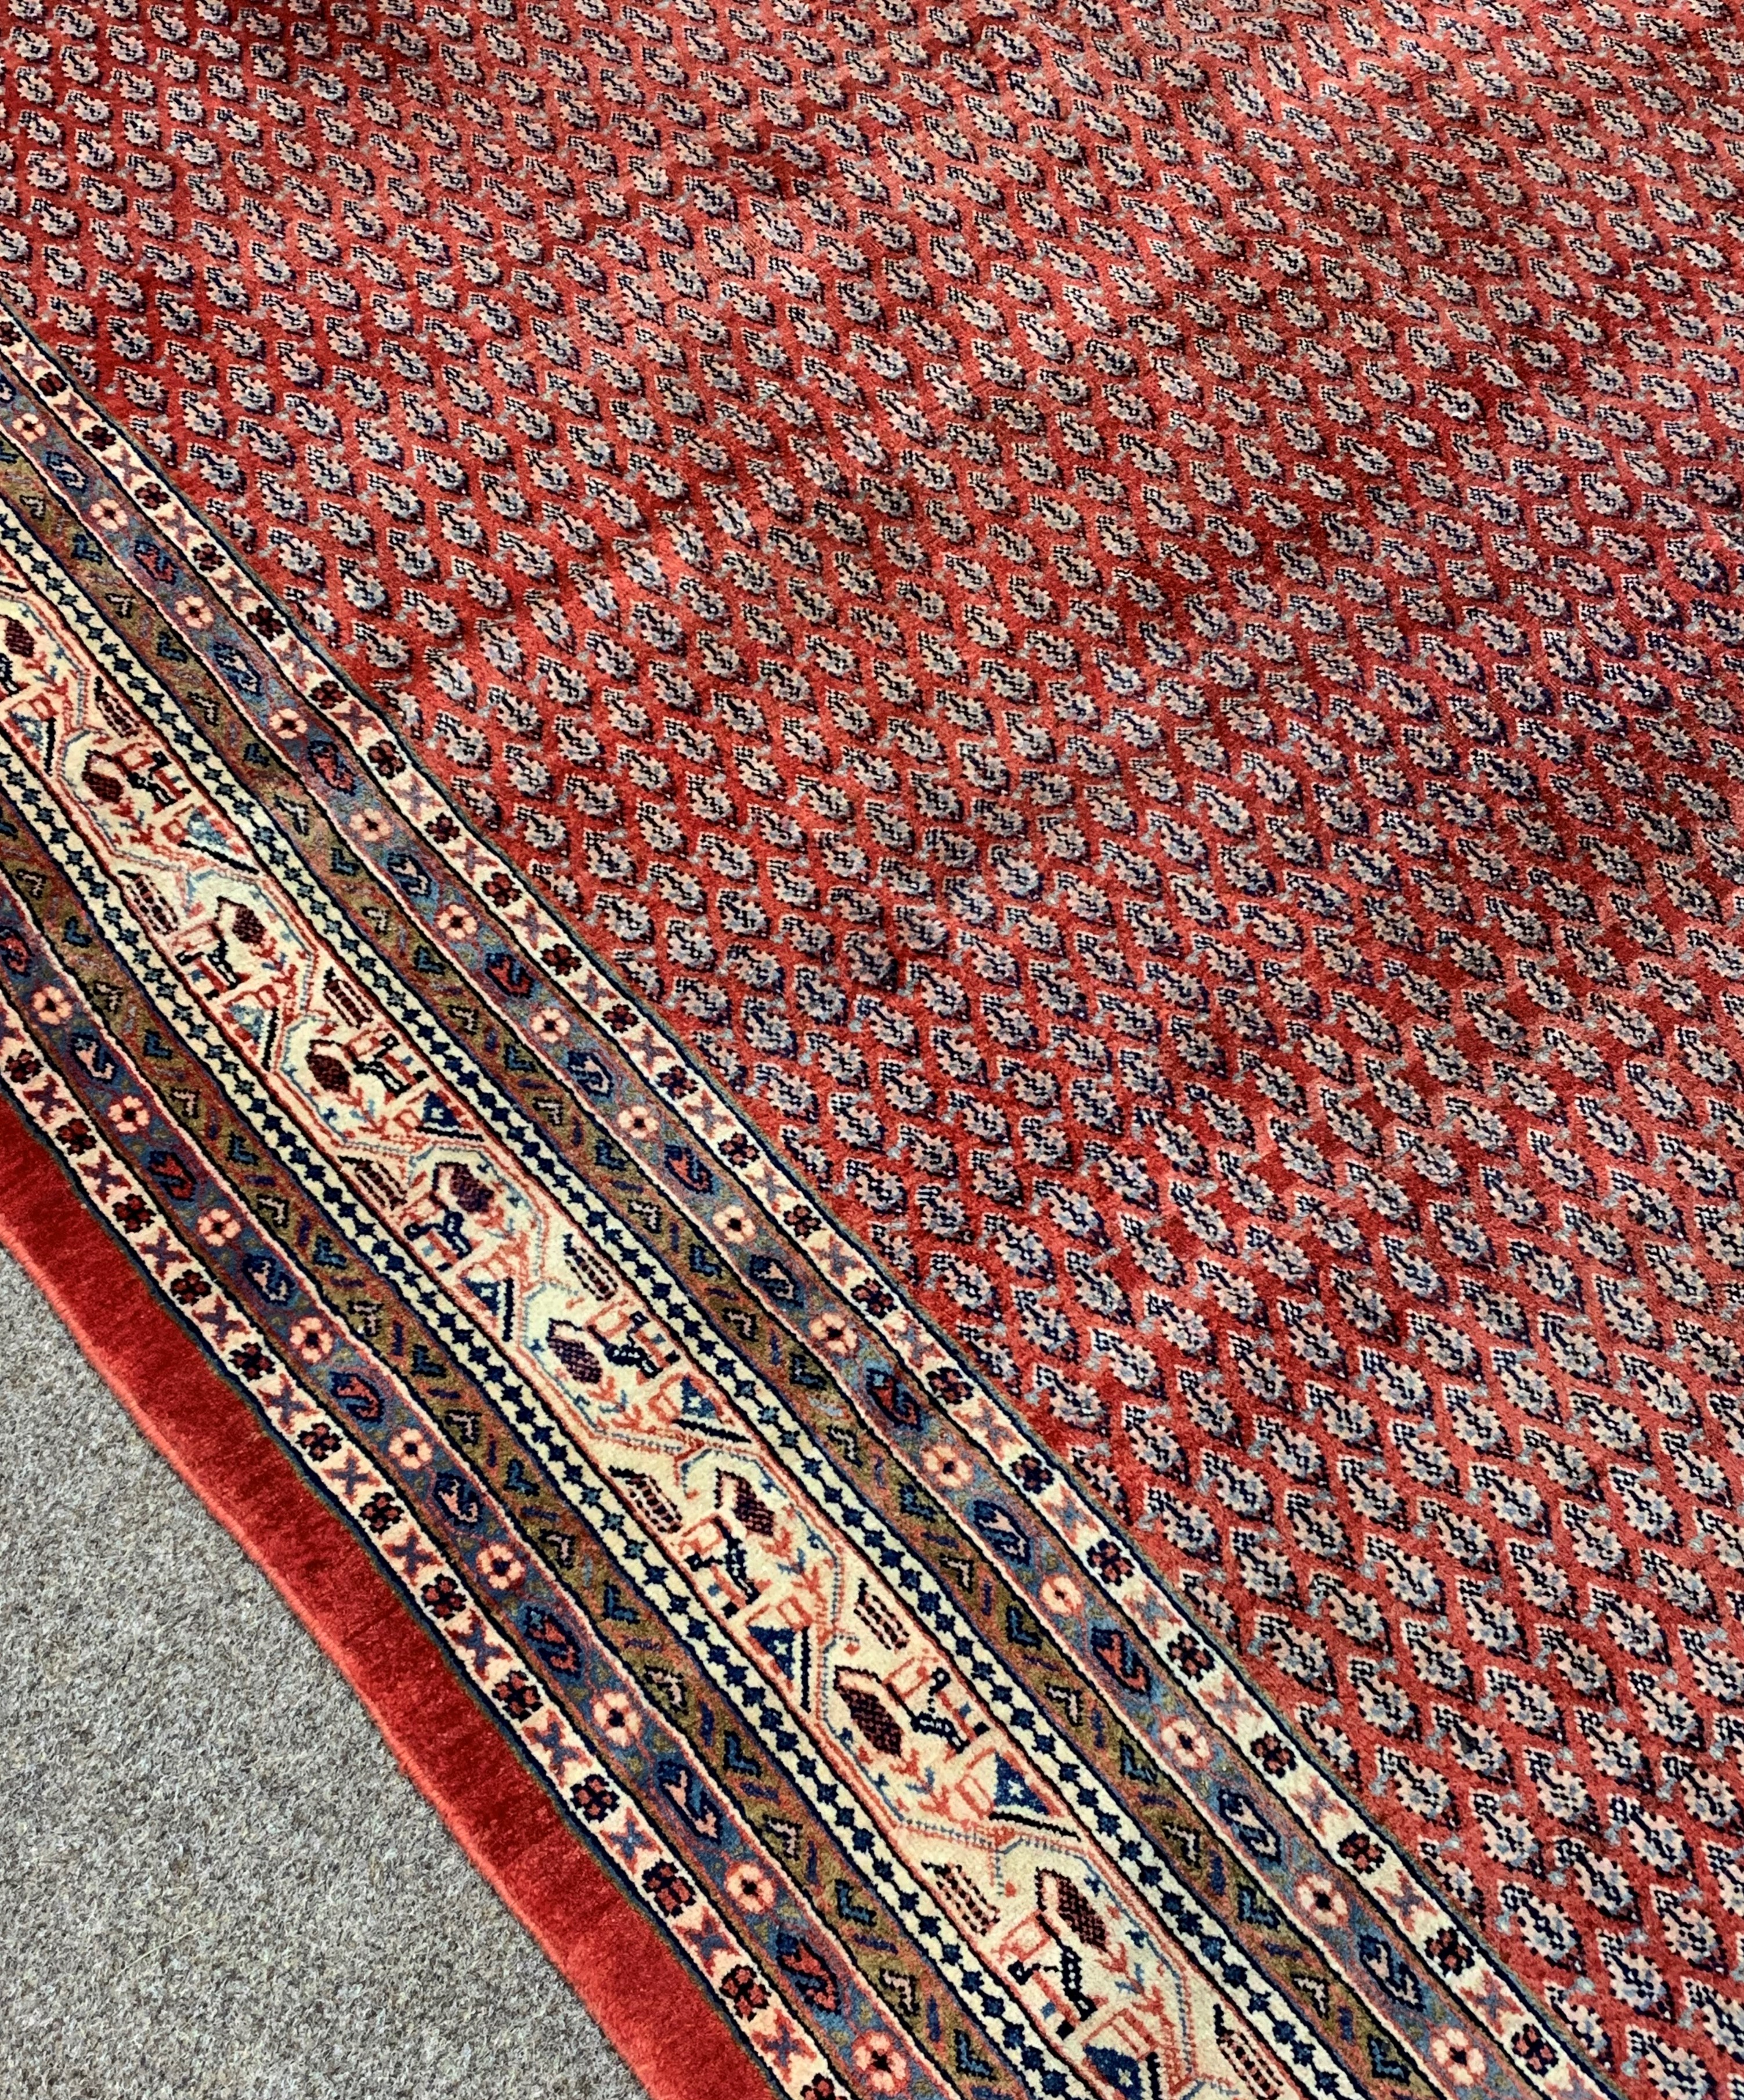 Large Persian Araak carpet, red ground field decorated all over with Boteh motifs, multiple band - Image 2 of 4